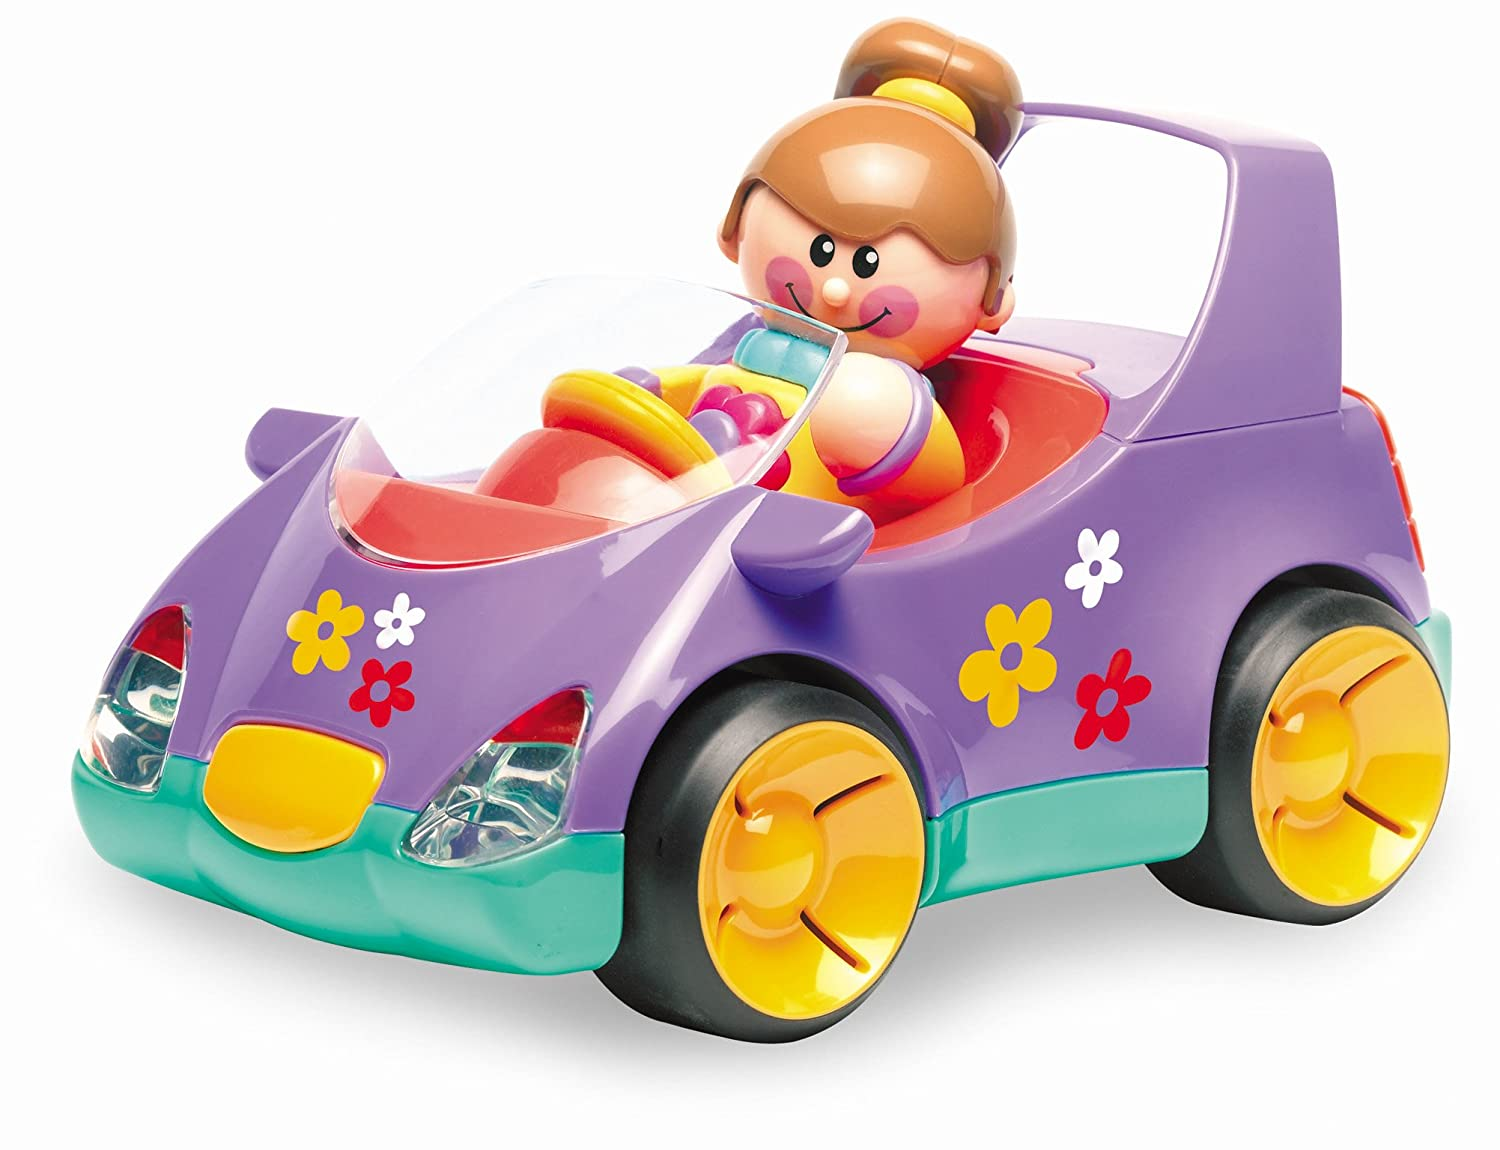 Tolo Toys First Friends Car Pastel Colors Figures Amazon Canada